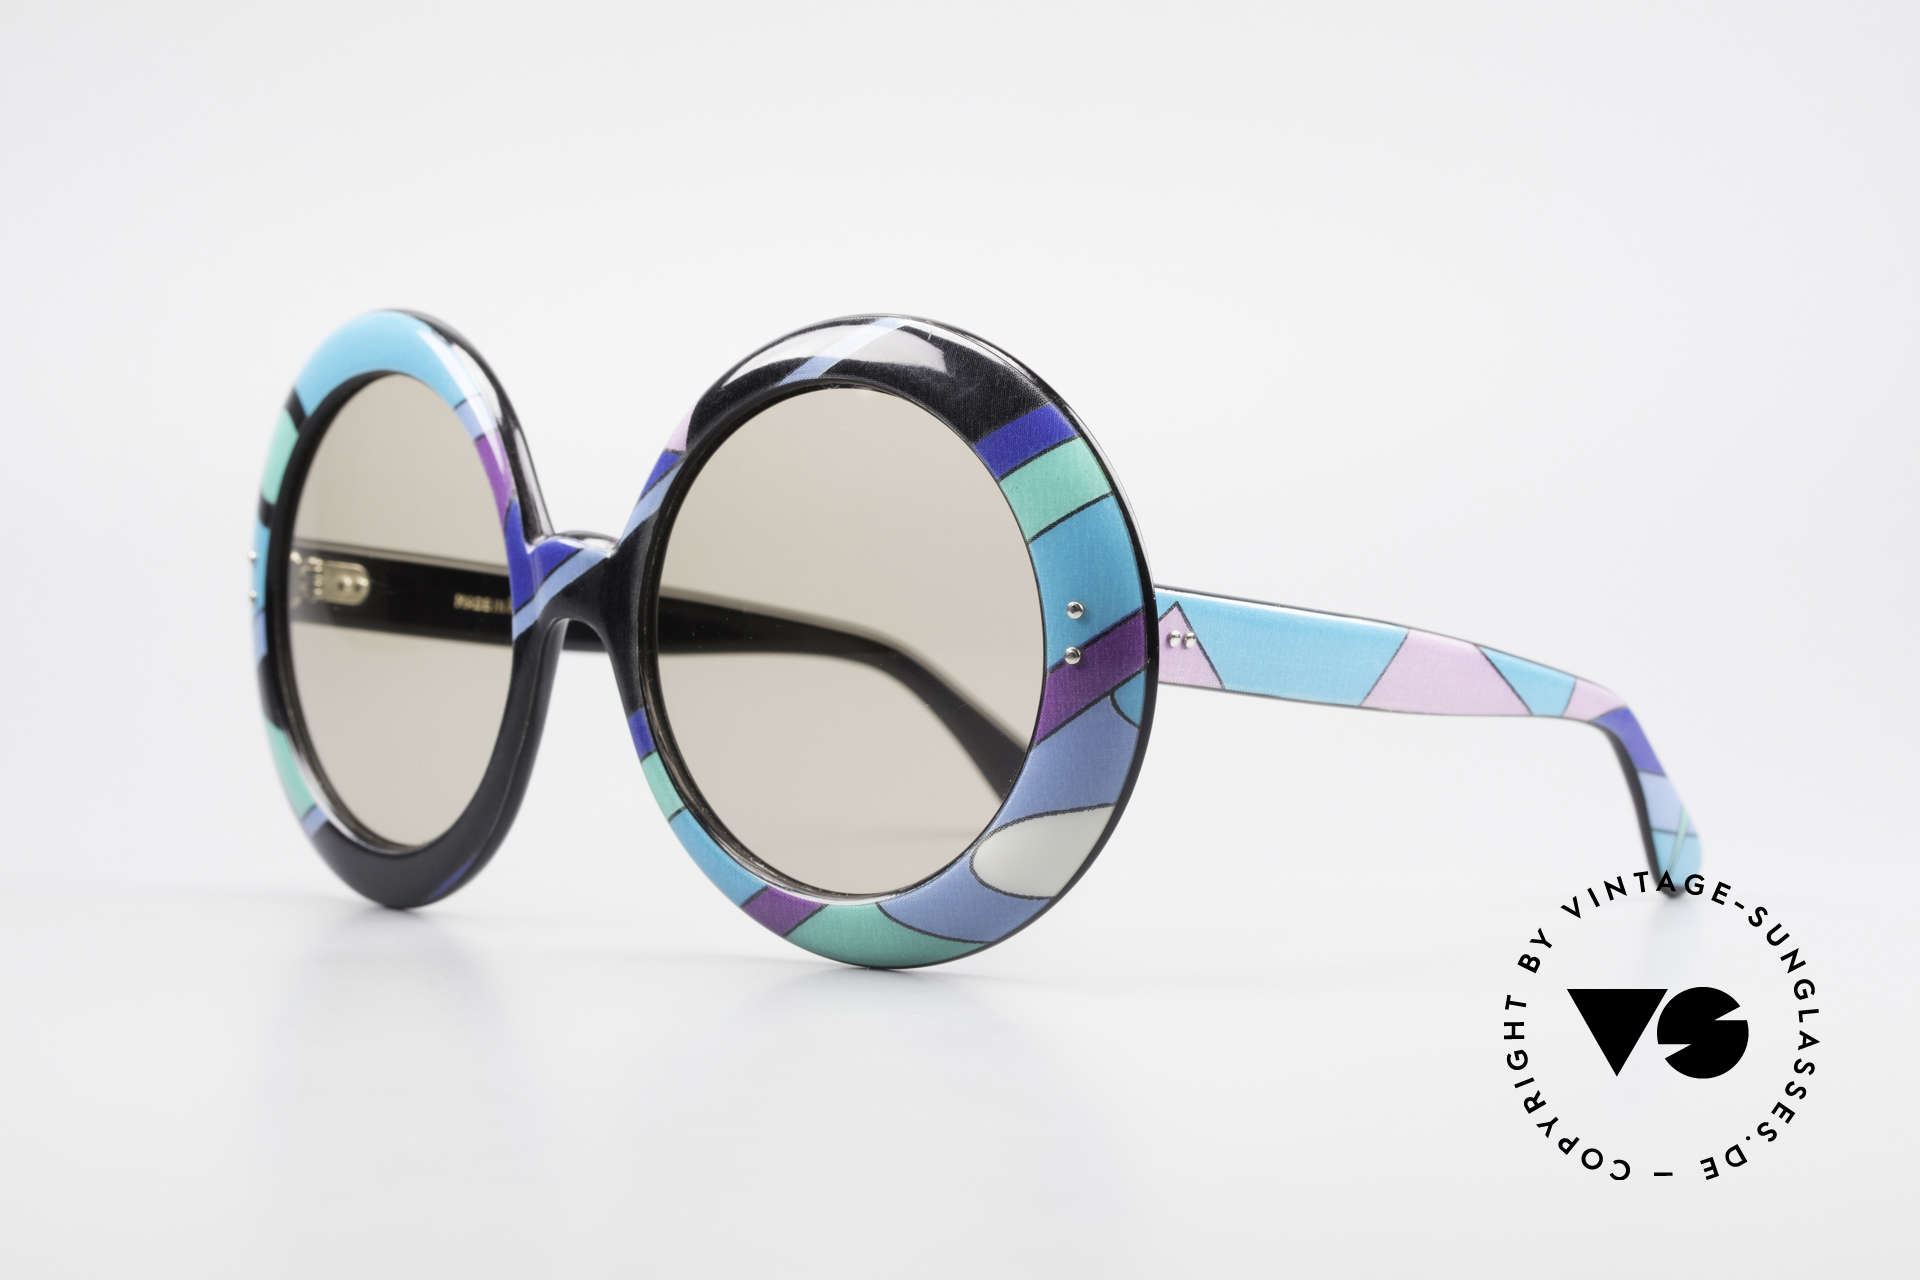 Emilio Pucci XXL Oversized 60's Sunglasses, stars like Sophia Loren, Grace Kelly, Marilyn Monroe ..., Made for Women